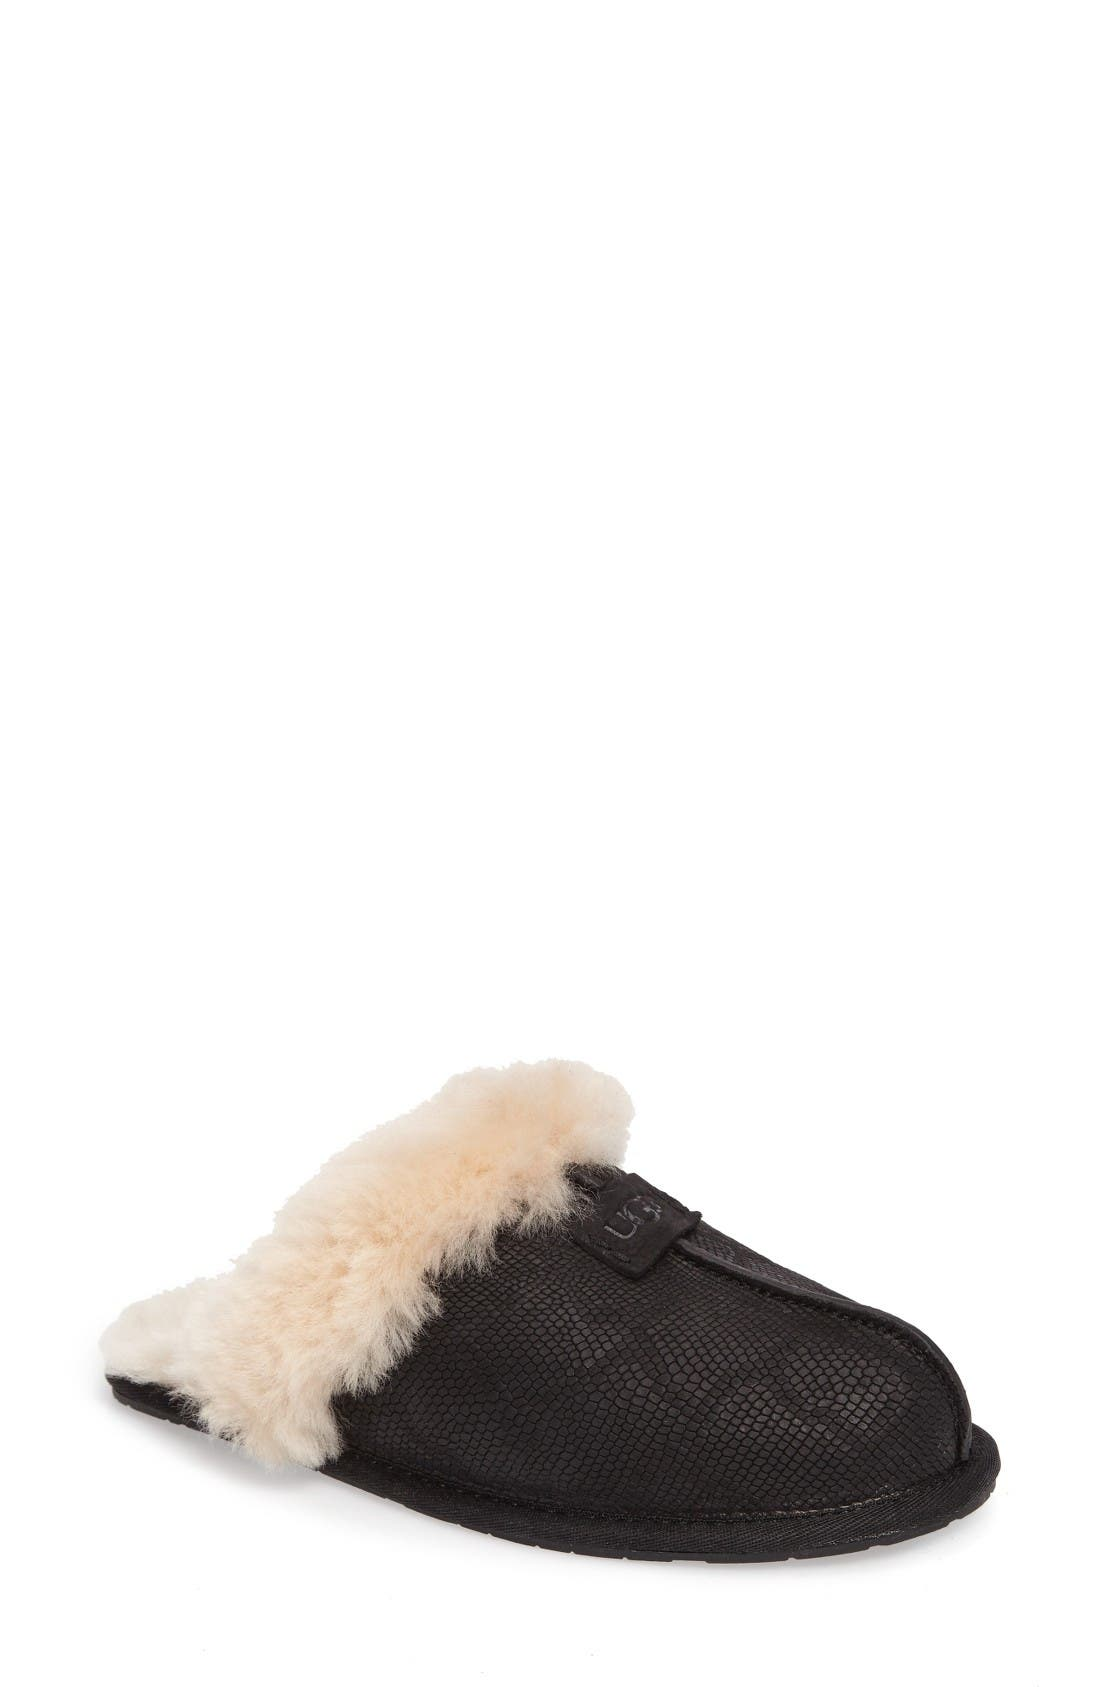 Main Image - UGG® Scuffette II Snake Embossed Slipper (Women)